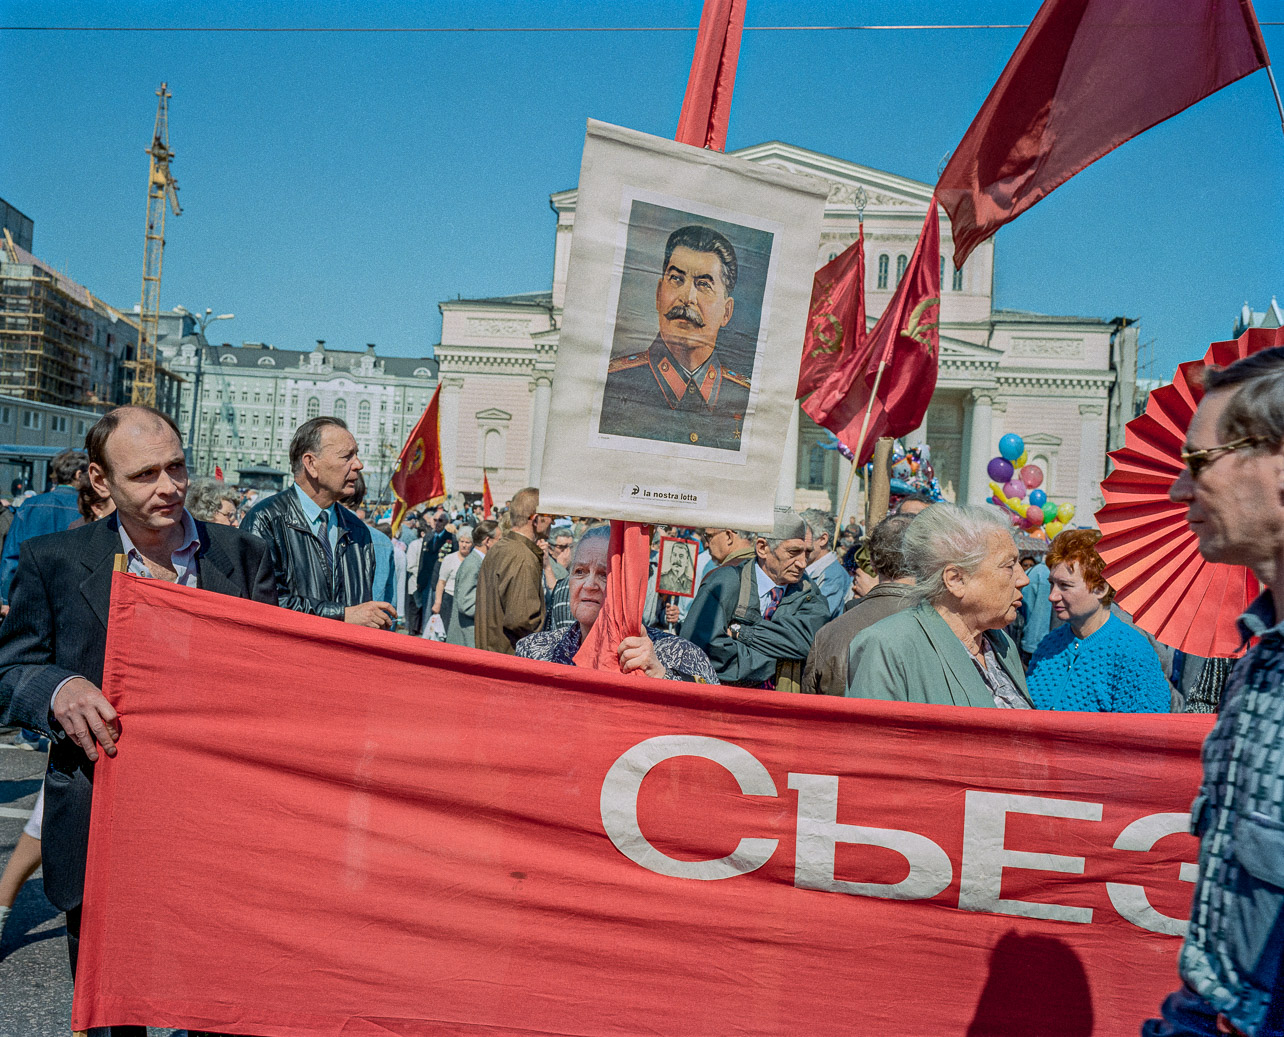 stalinless_red2018 (1 of 1).jpg